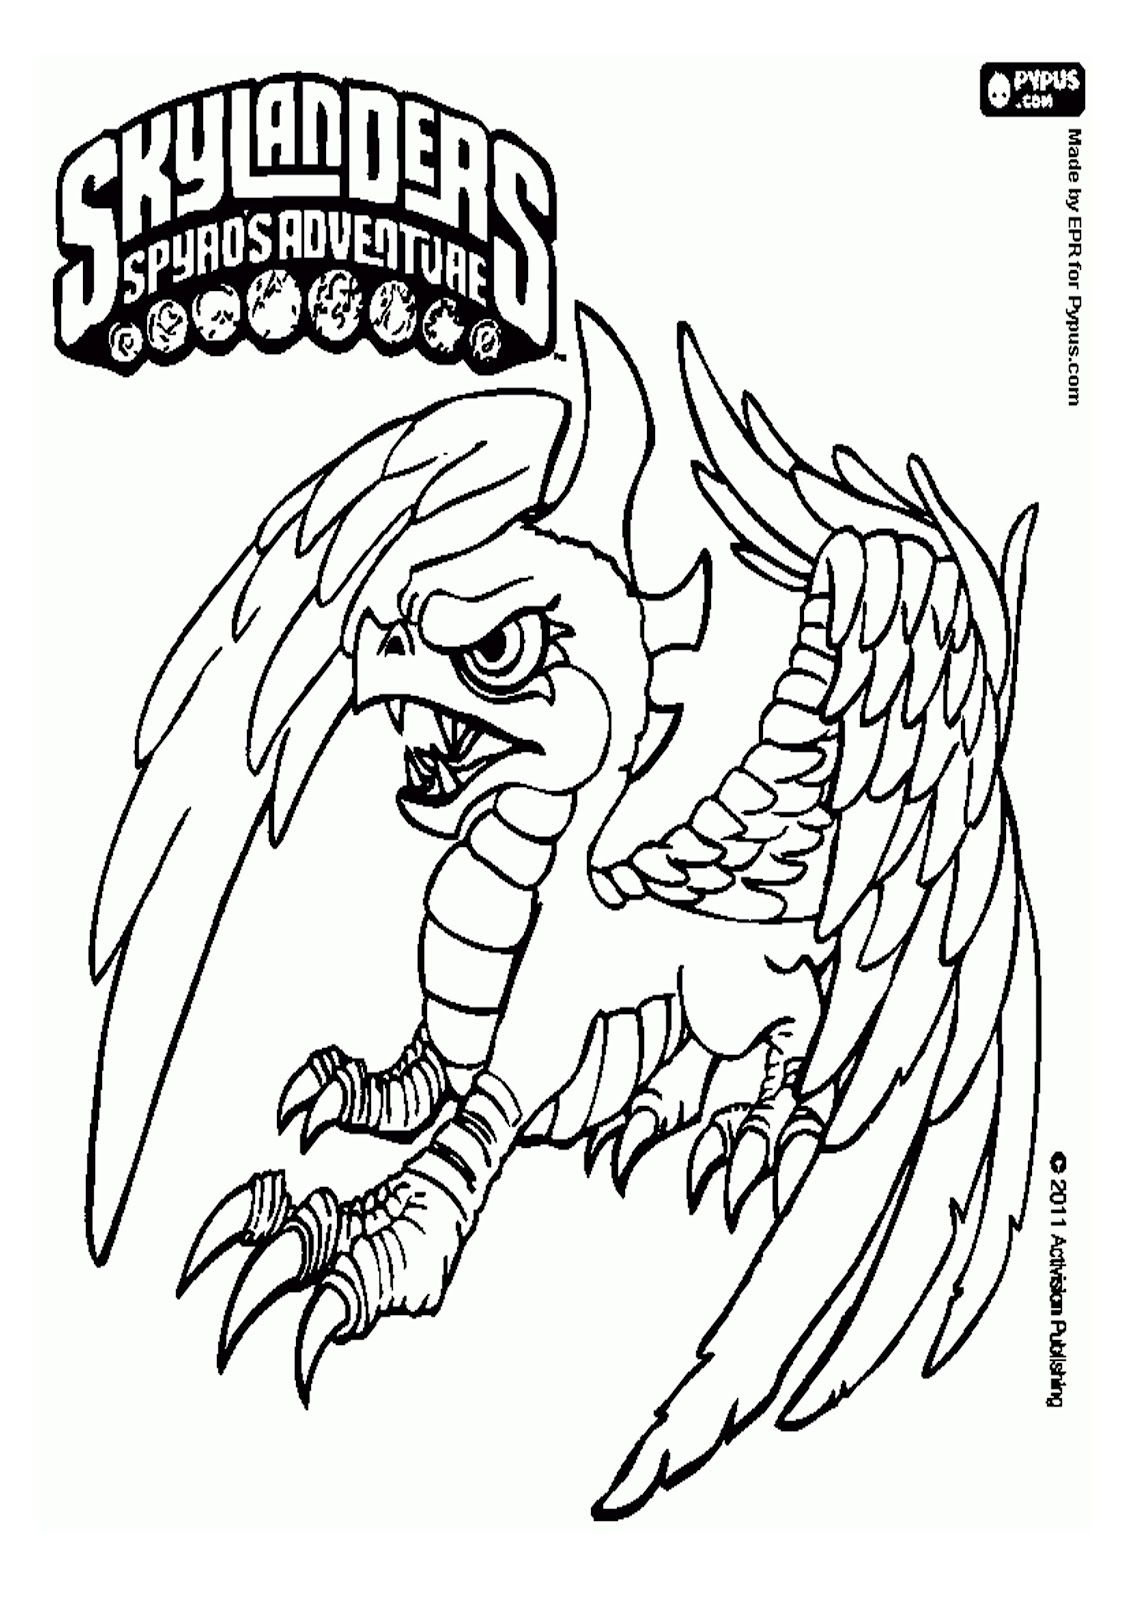 skylander coloring pages to print - photo#11